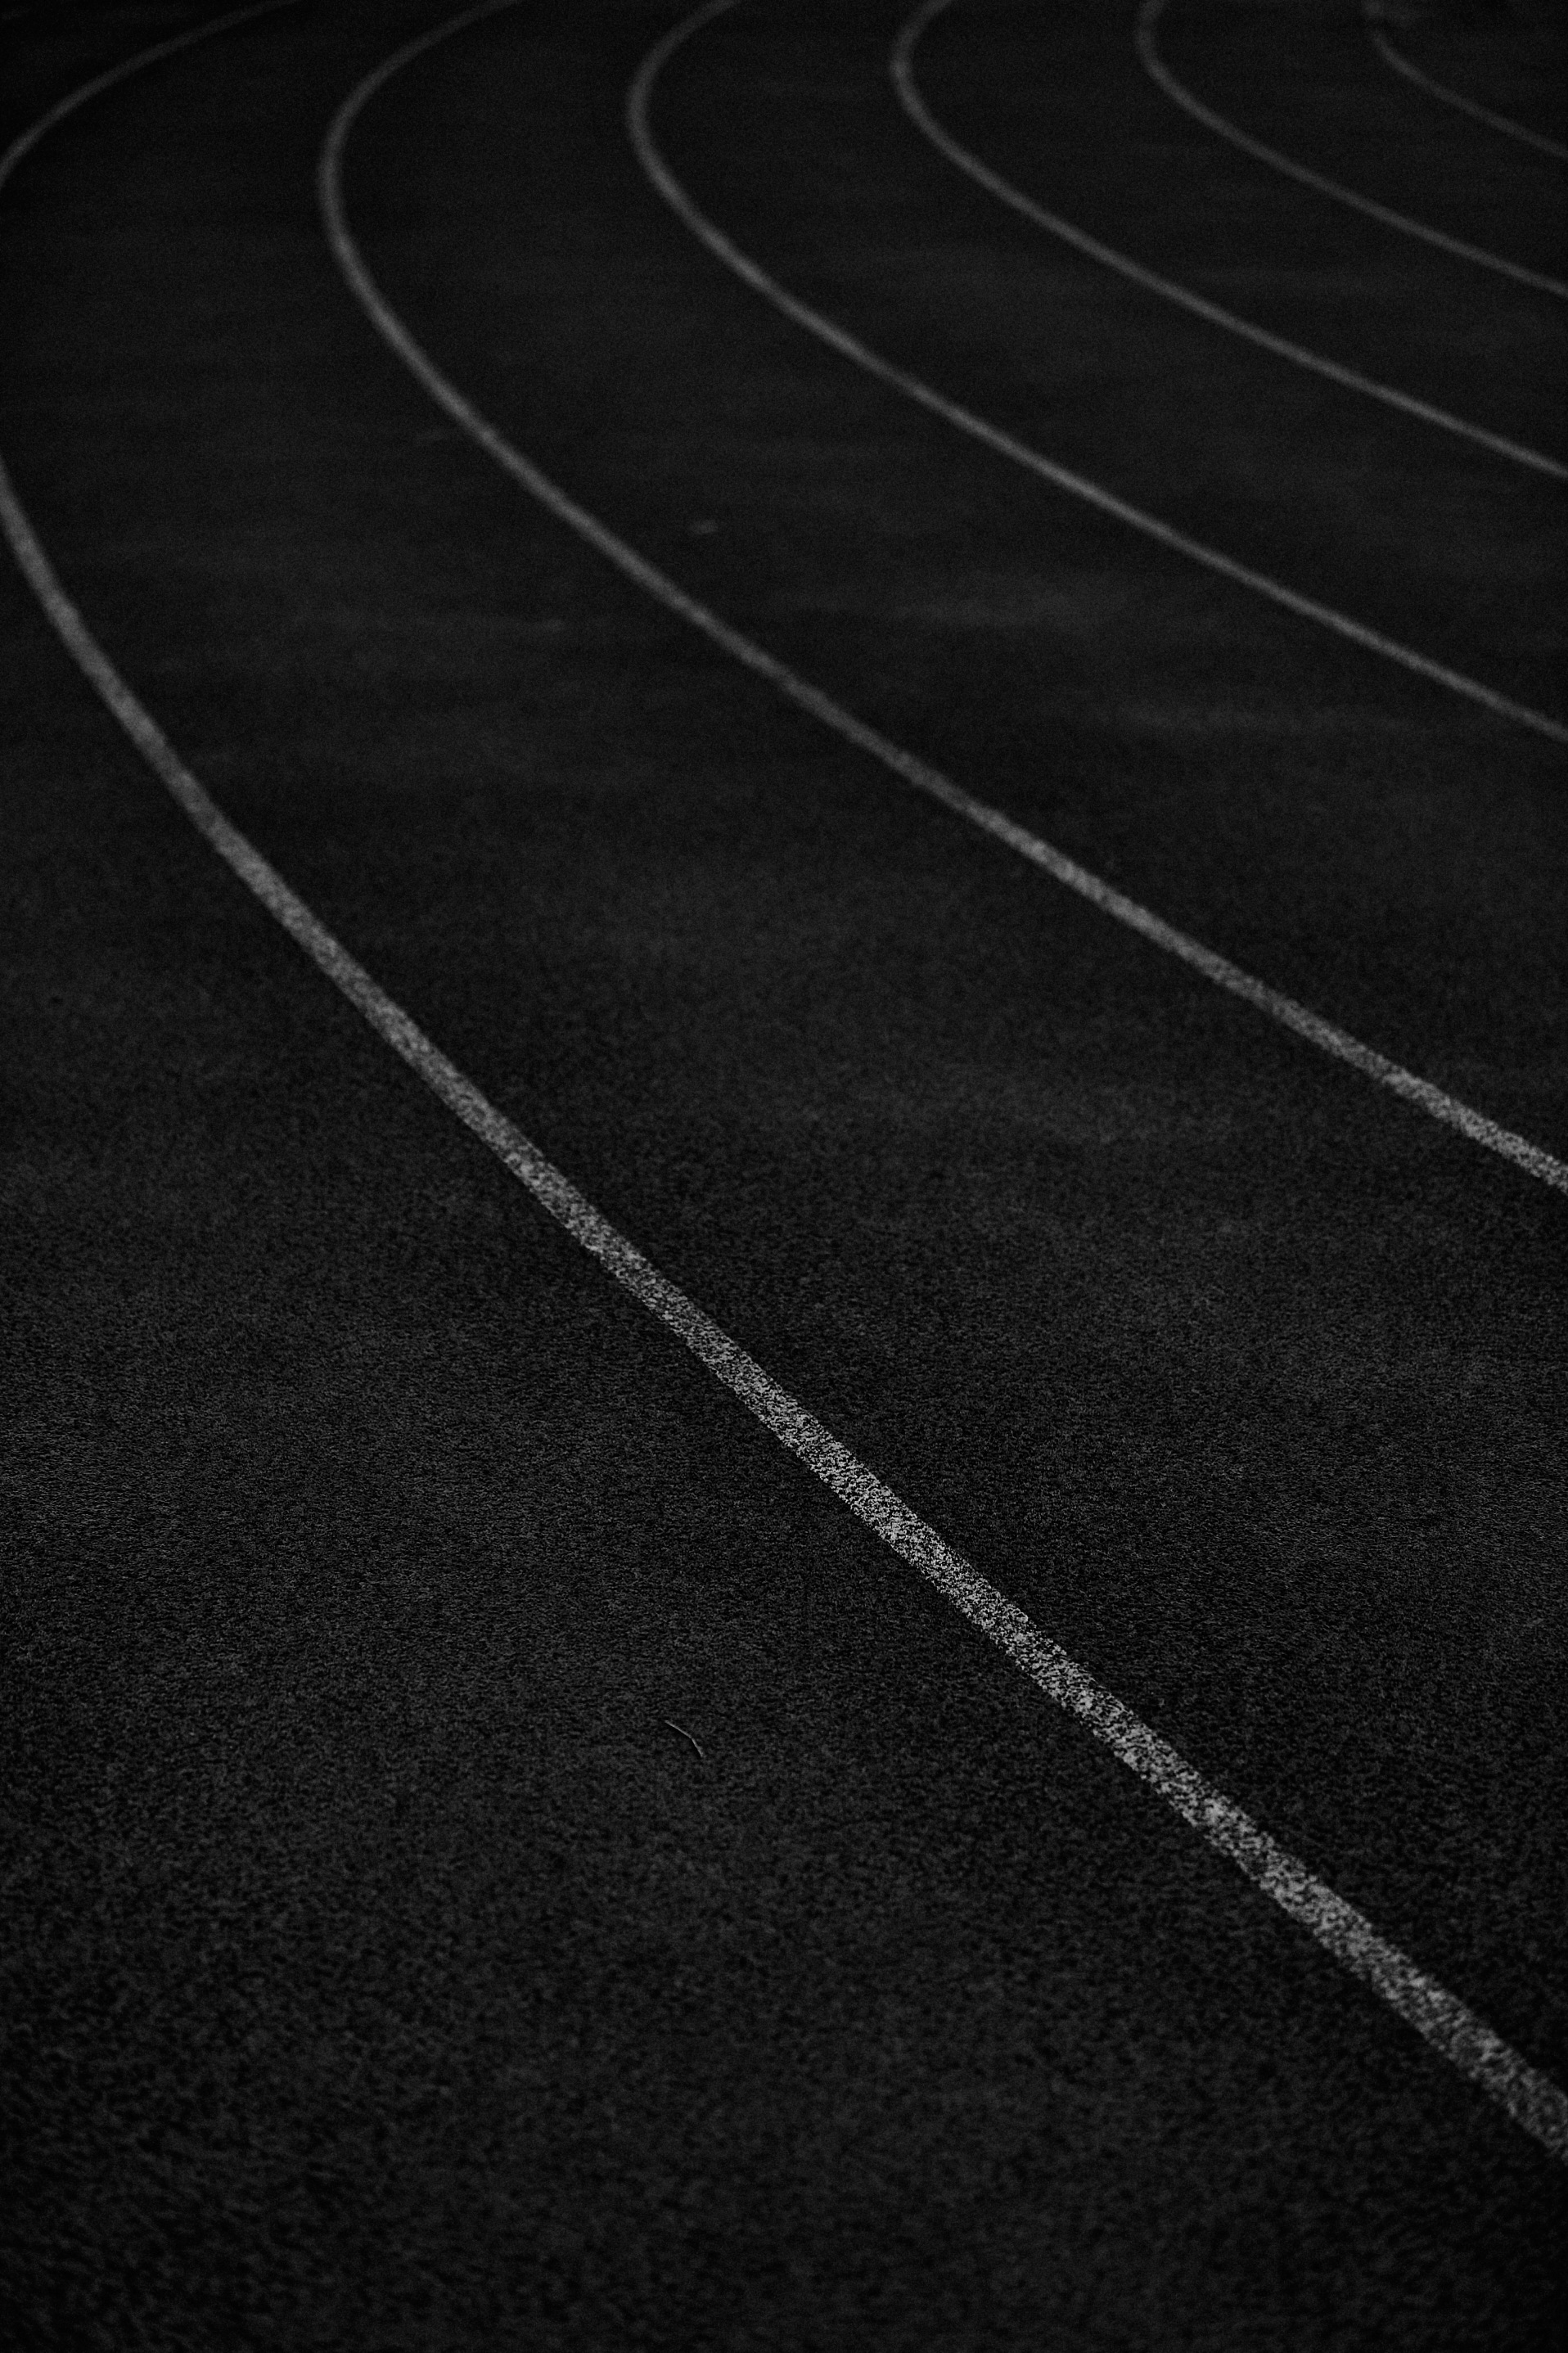 The track at City Park during the Power Milers Track Club marathon training, New Orleans, LA.